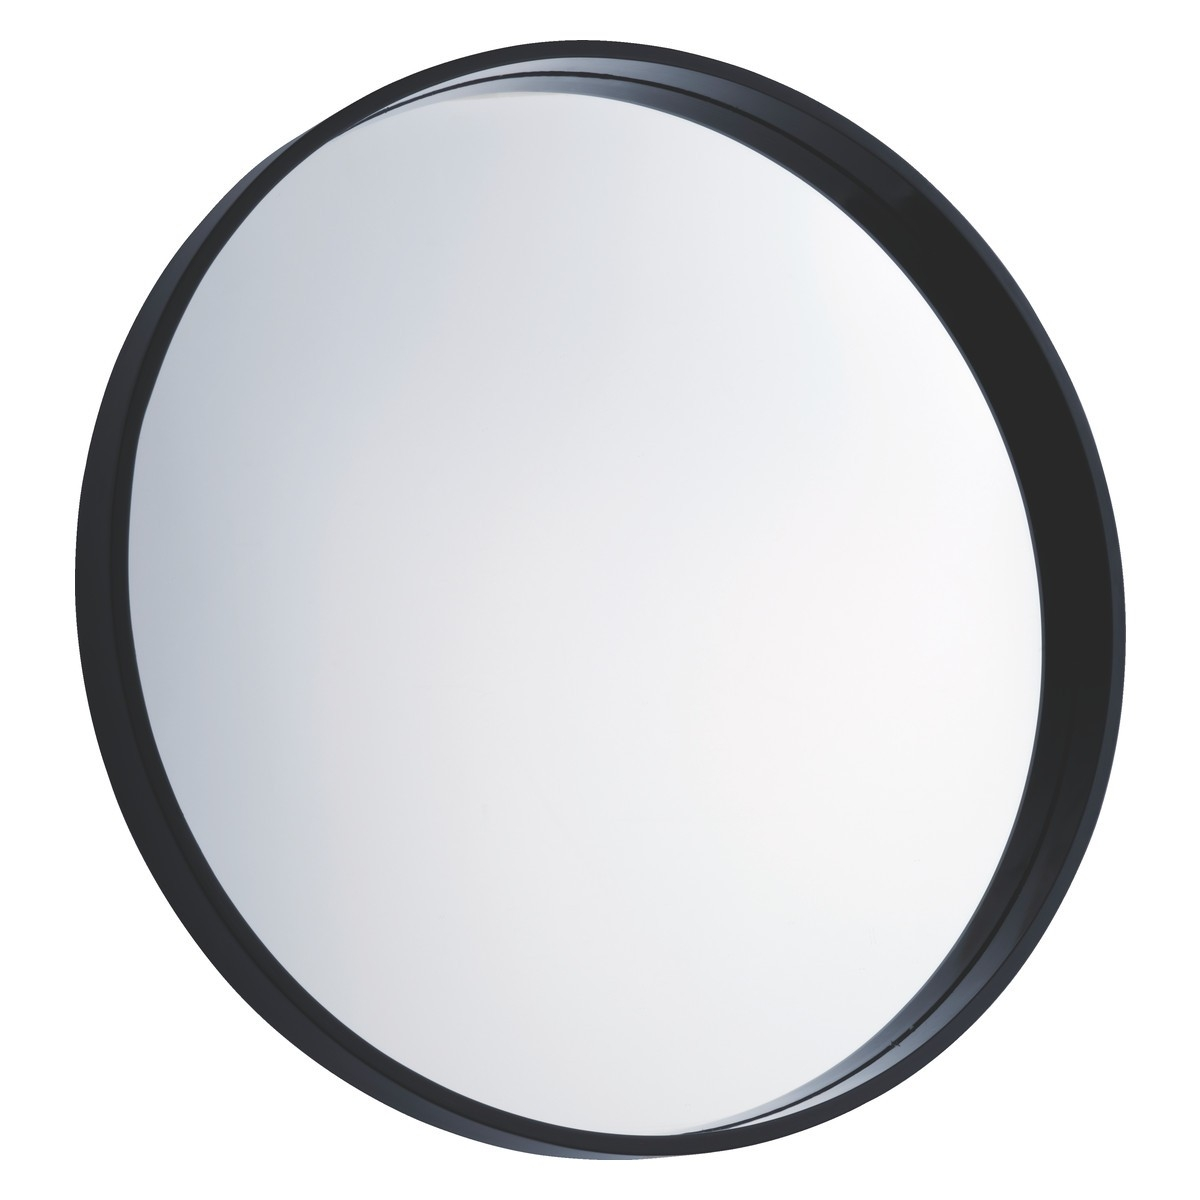 Aimee Black Round Wall Mirror D65cm Bathroom Pinterest Wall Intended For Black Circle Mirrors (Image 1 of 15)